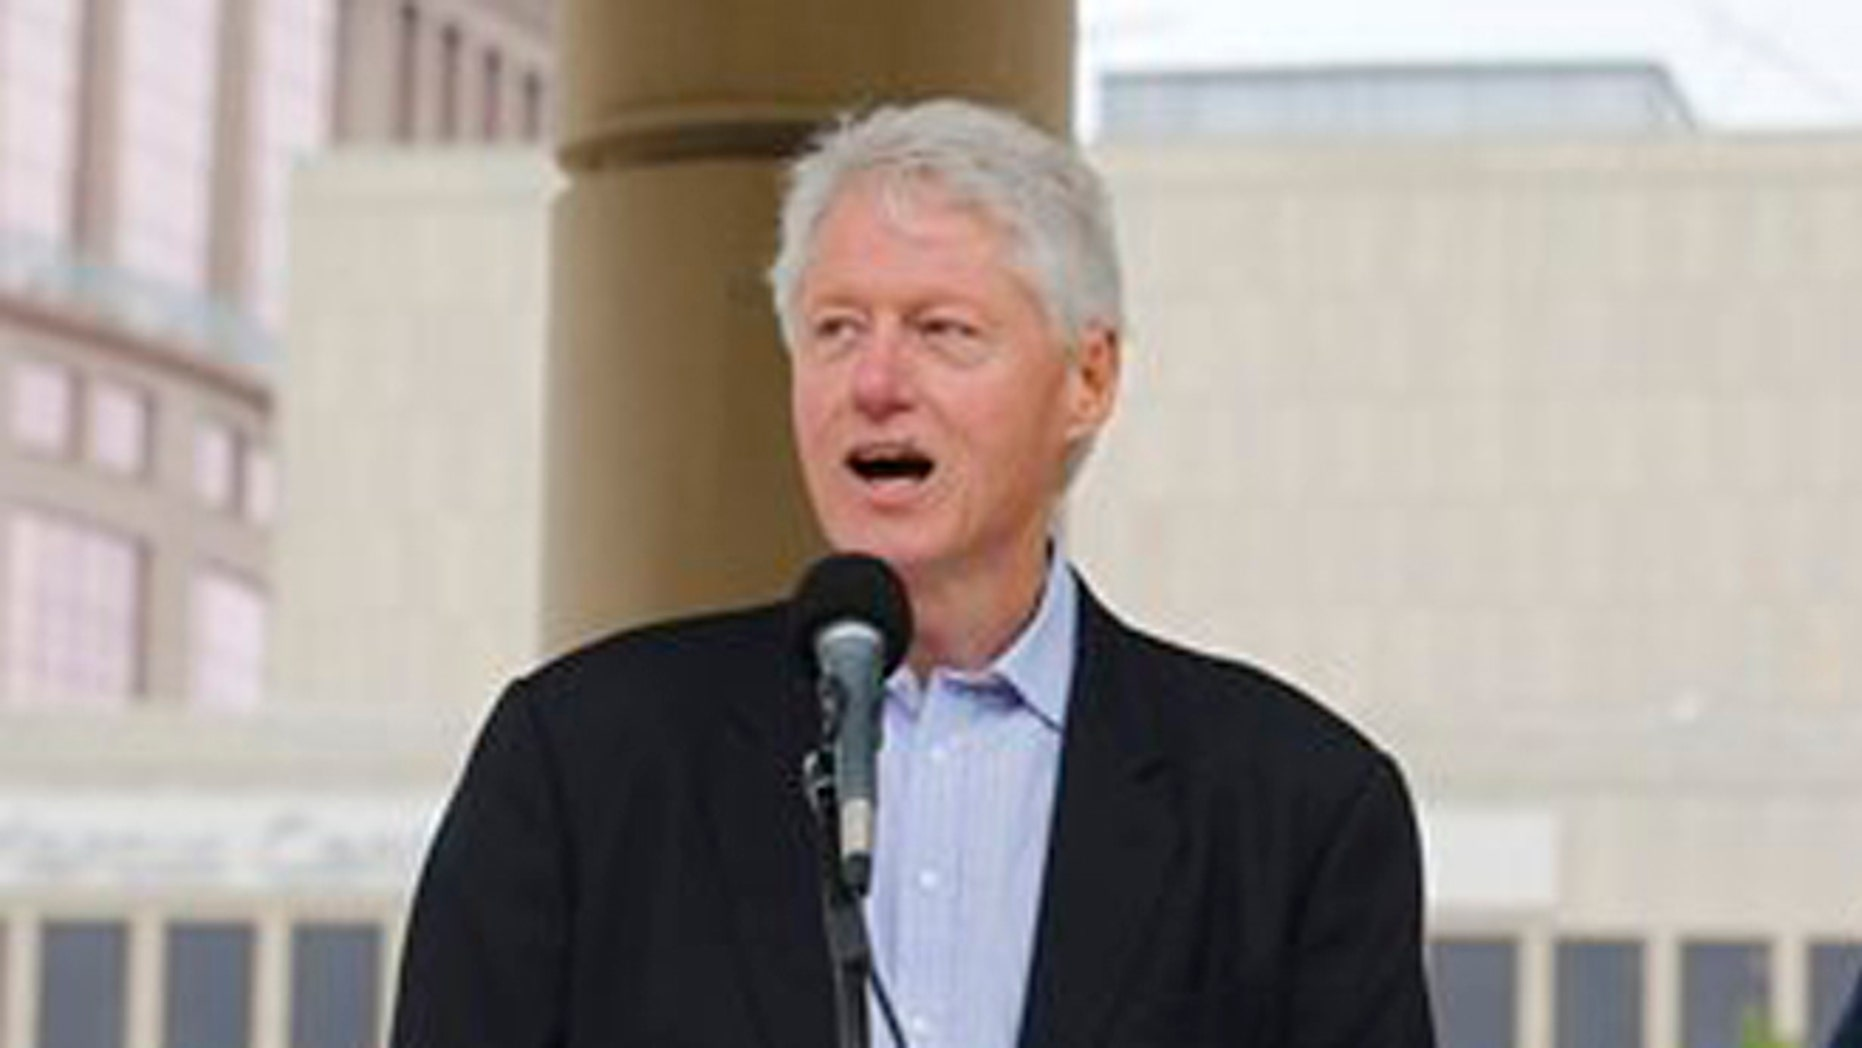 June 1, 2012: Former President Bill Clinton in Wisconsin before the recall election.